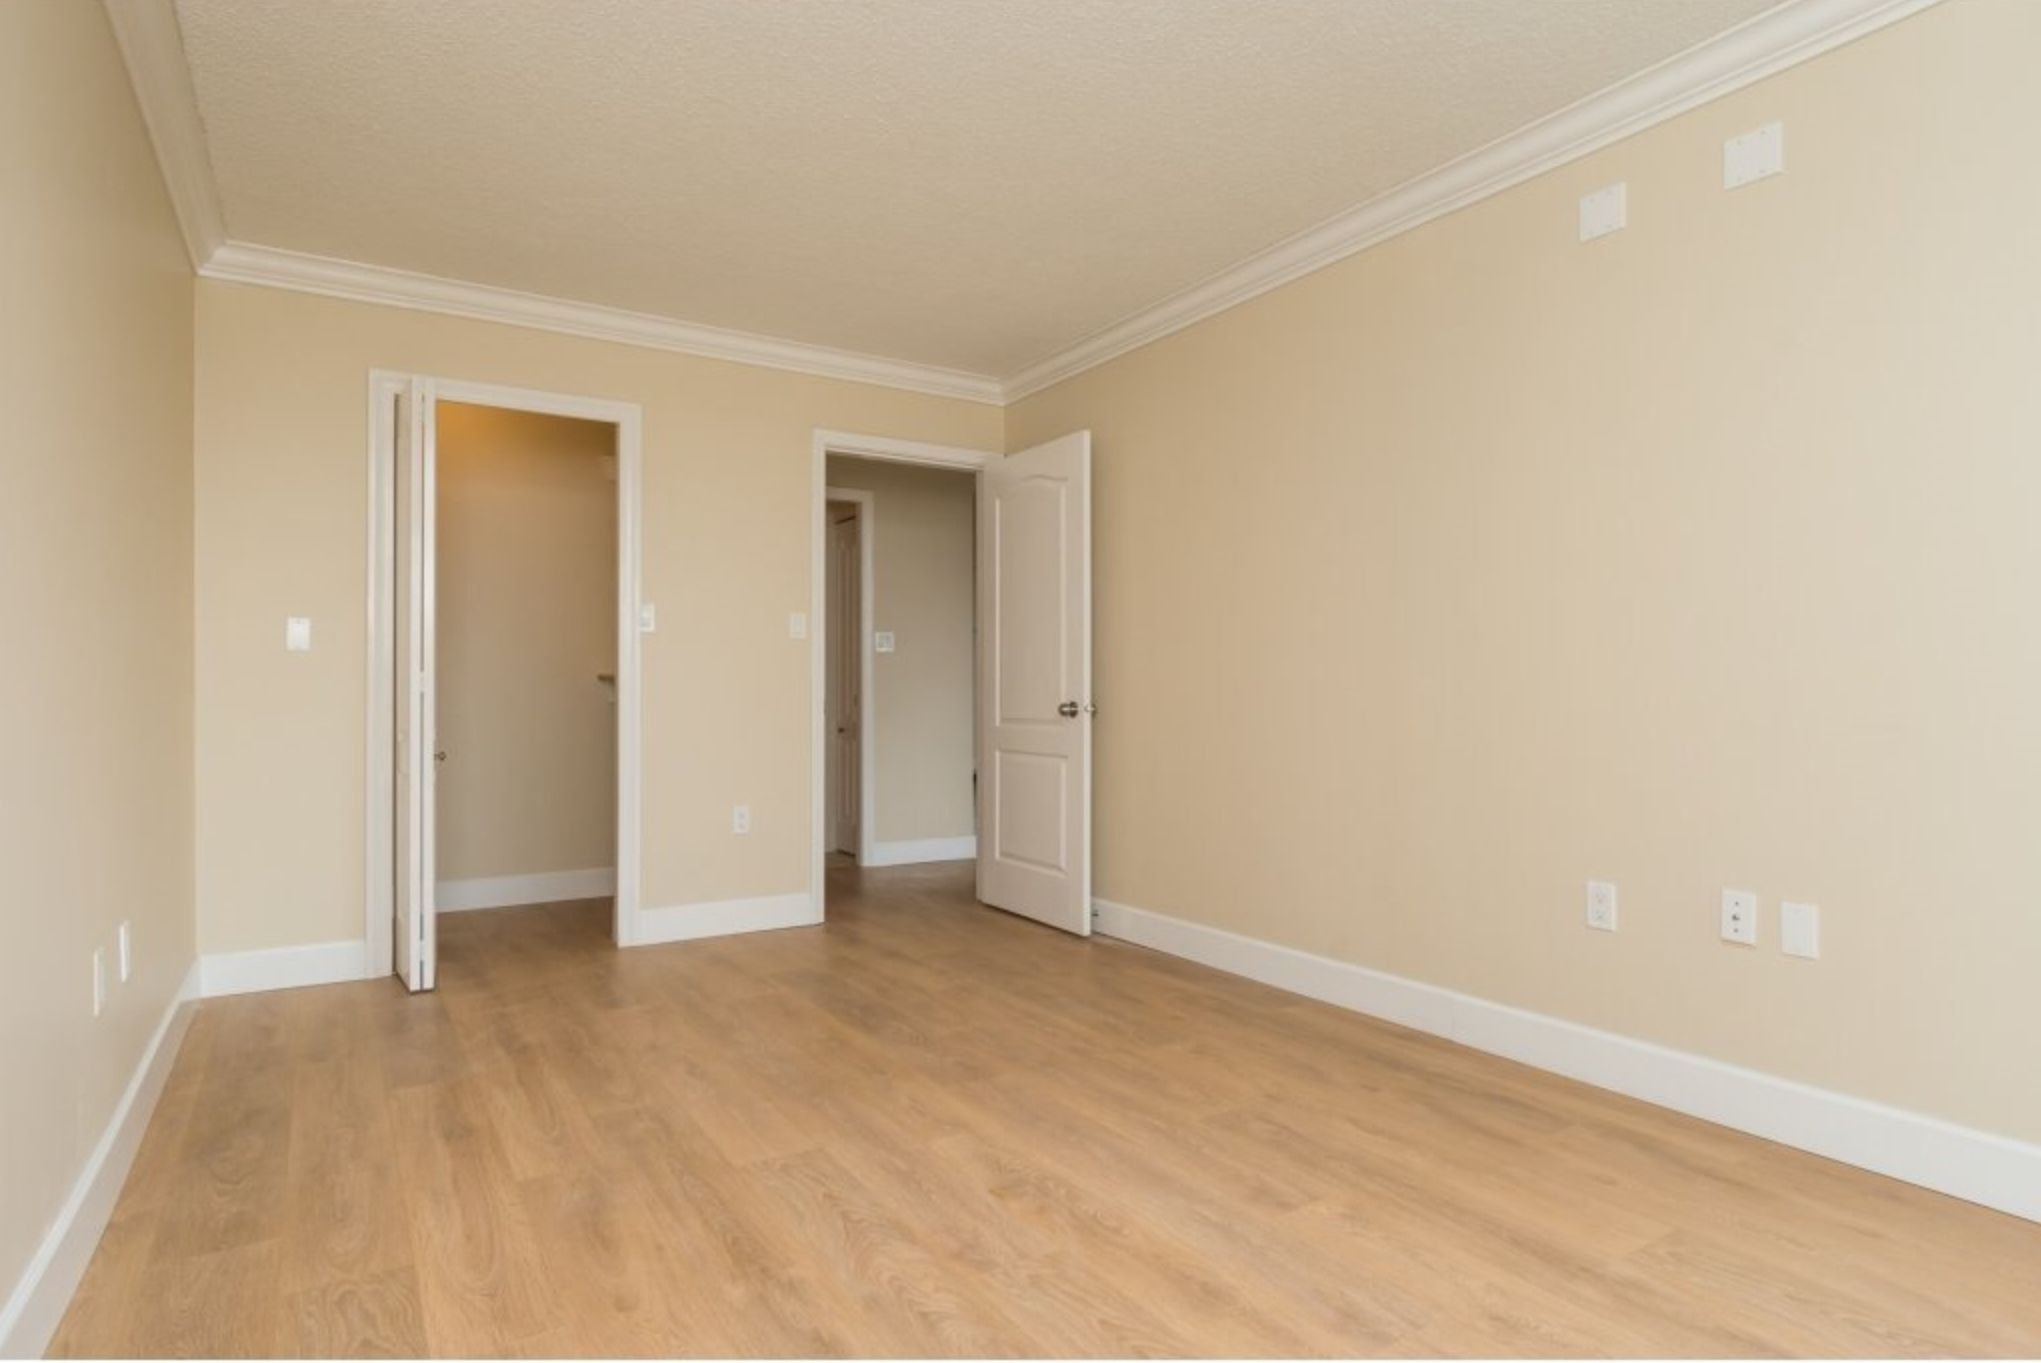 Photo 11: Photos: 410, 15111 Russell Avenue: White Rock Condo for sale (South Surrey White Rock)  : MLS®# R2152299